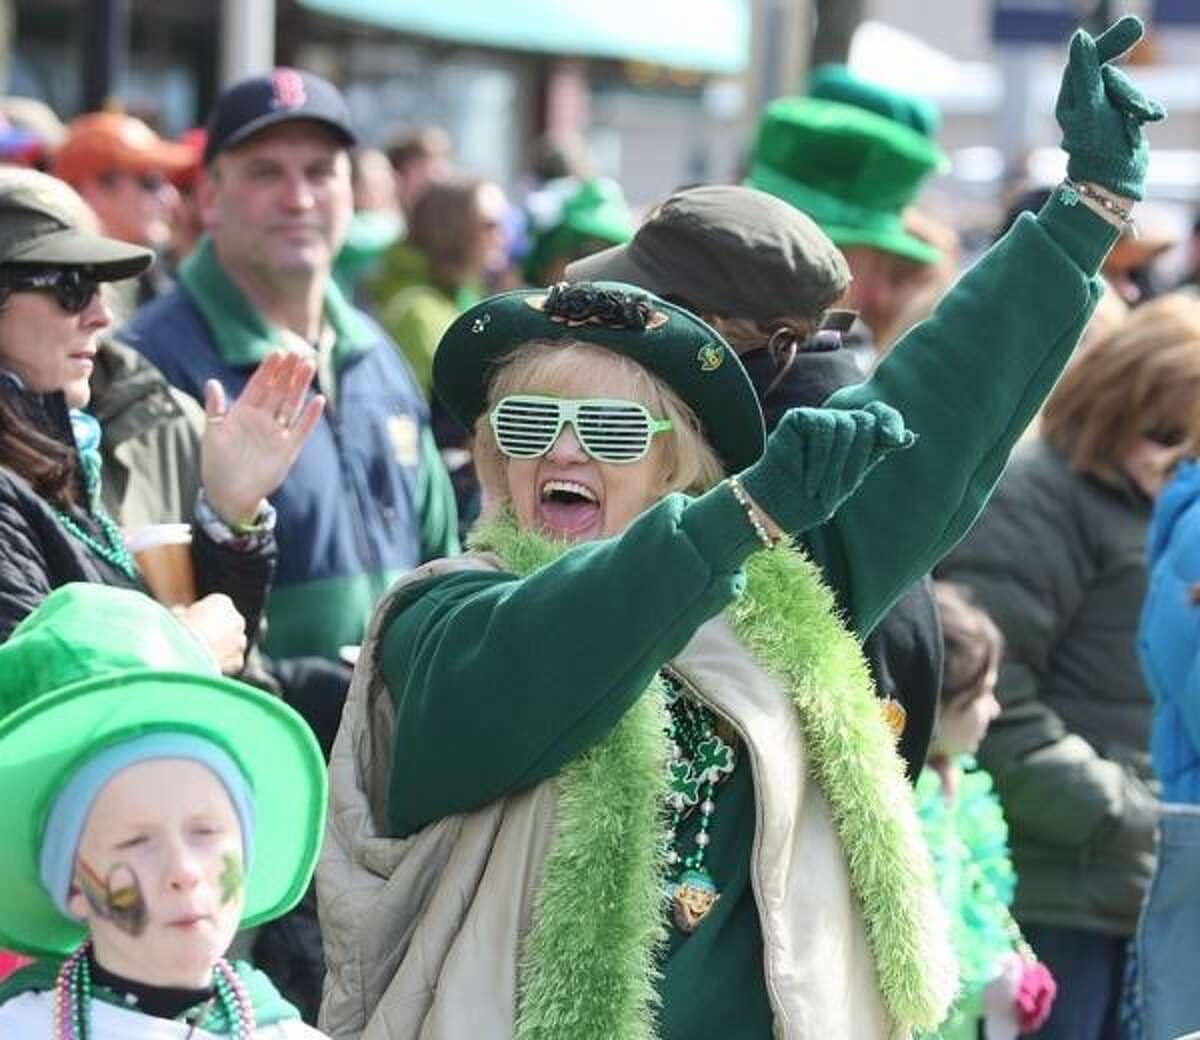 John Haeger @OneidaPhoto on Twitter/Oneida Daily Dispatch Densie Fenton cheers as the 12th annual St. Patrick's Day Parade passes by on Saturday, March 16, 2013 in Camden.